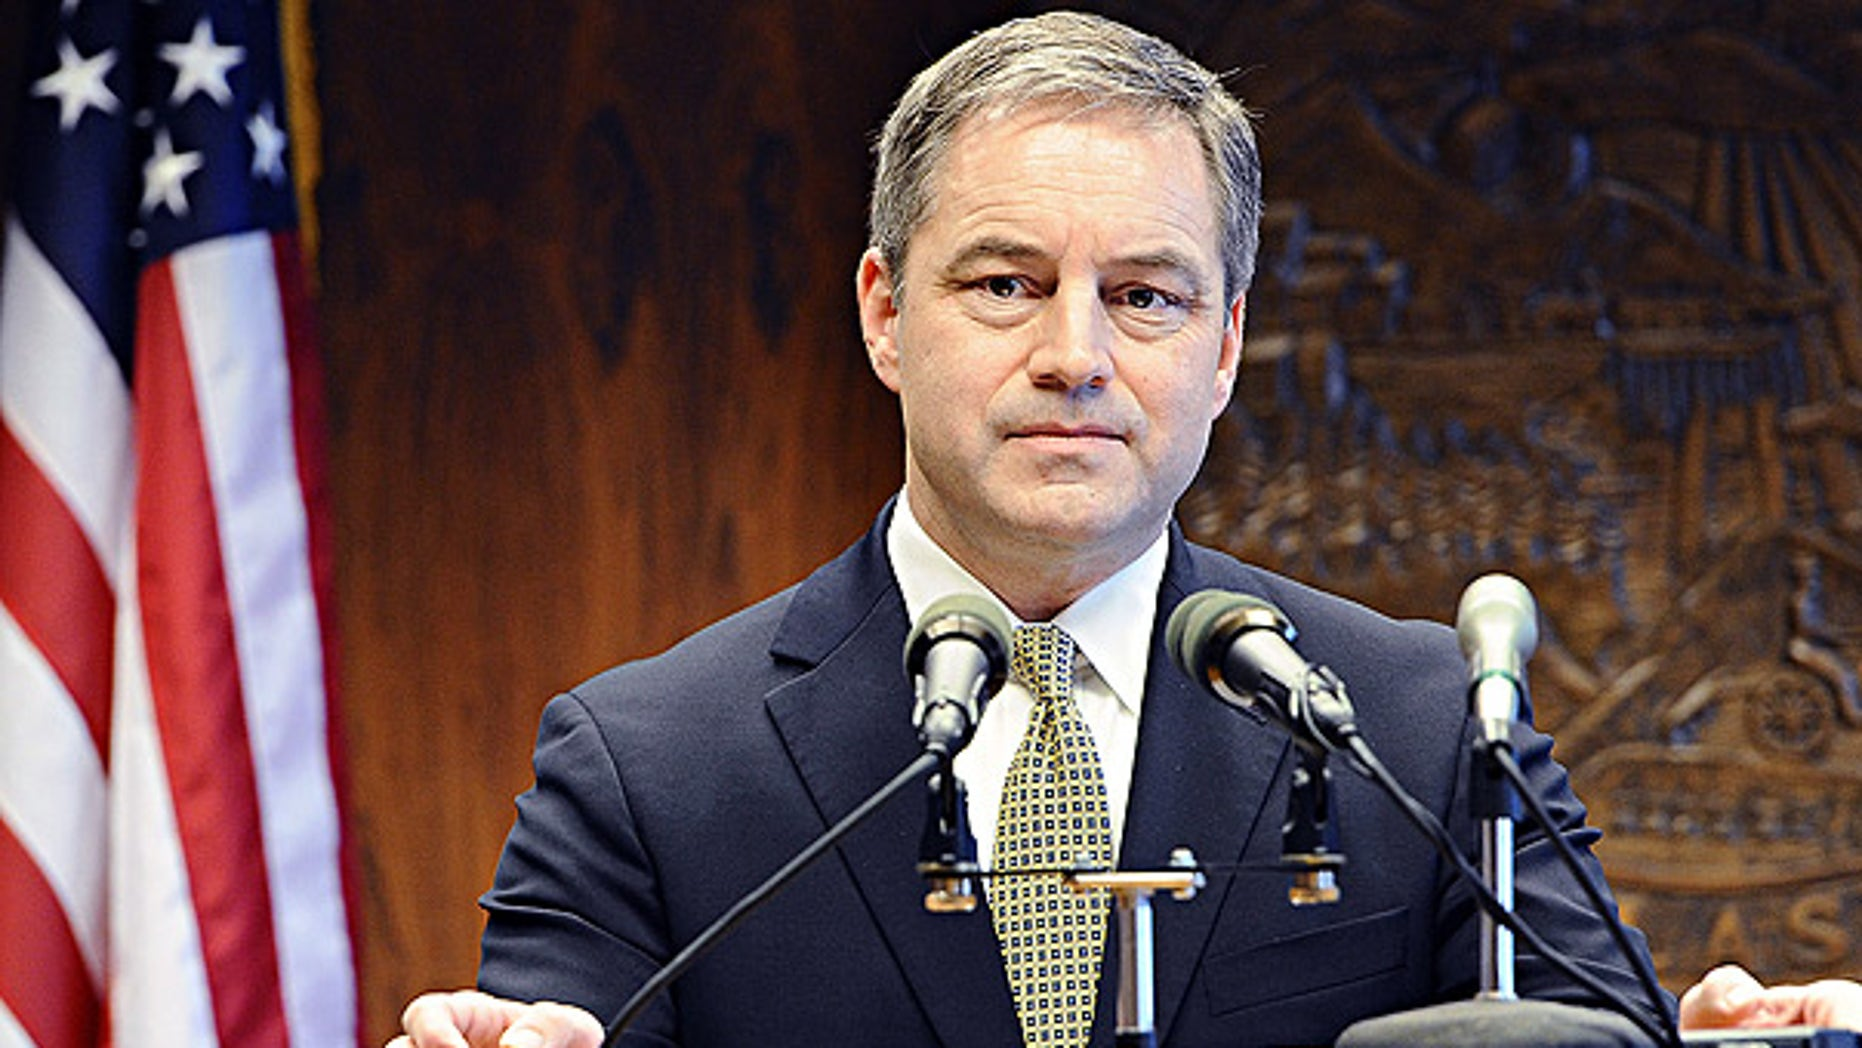 Jan. 20: Alaska Governor Sean Parnell during a news conference in Juneau.